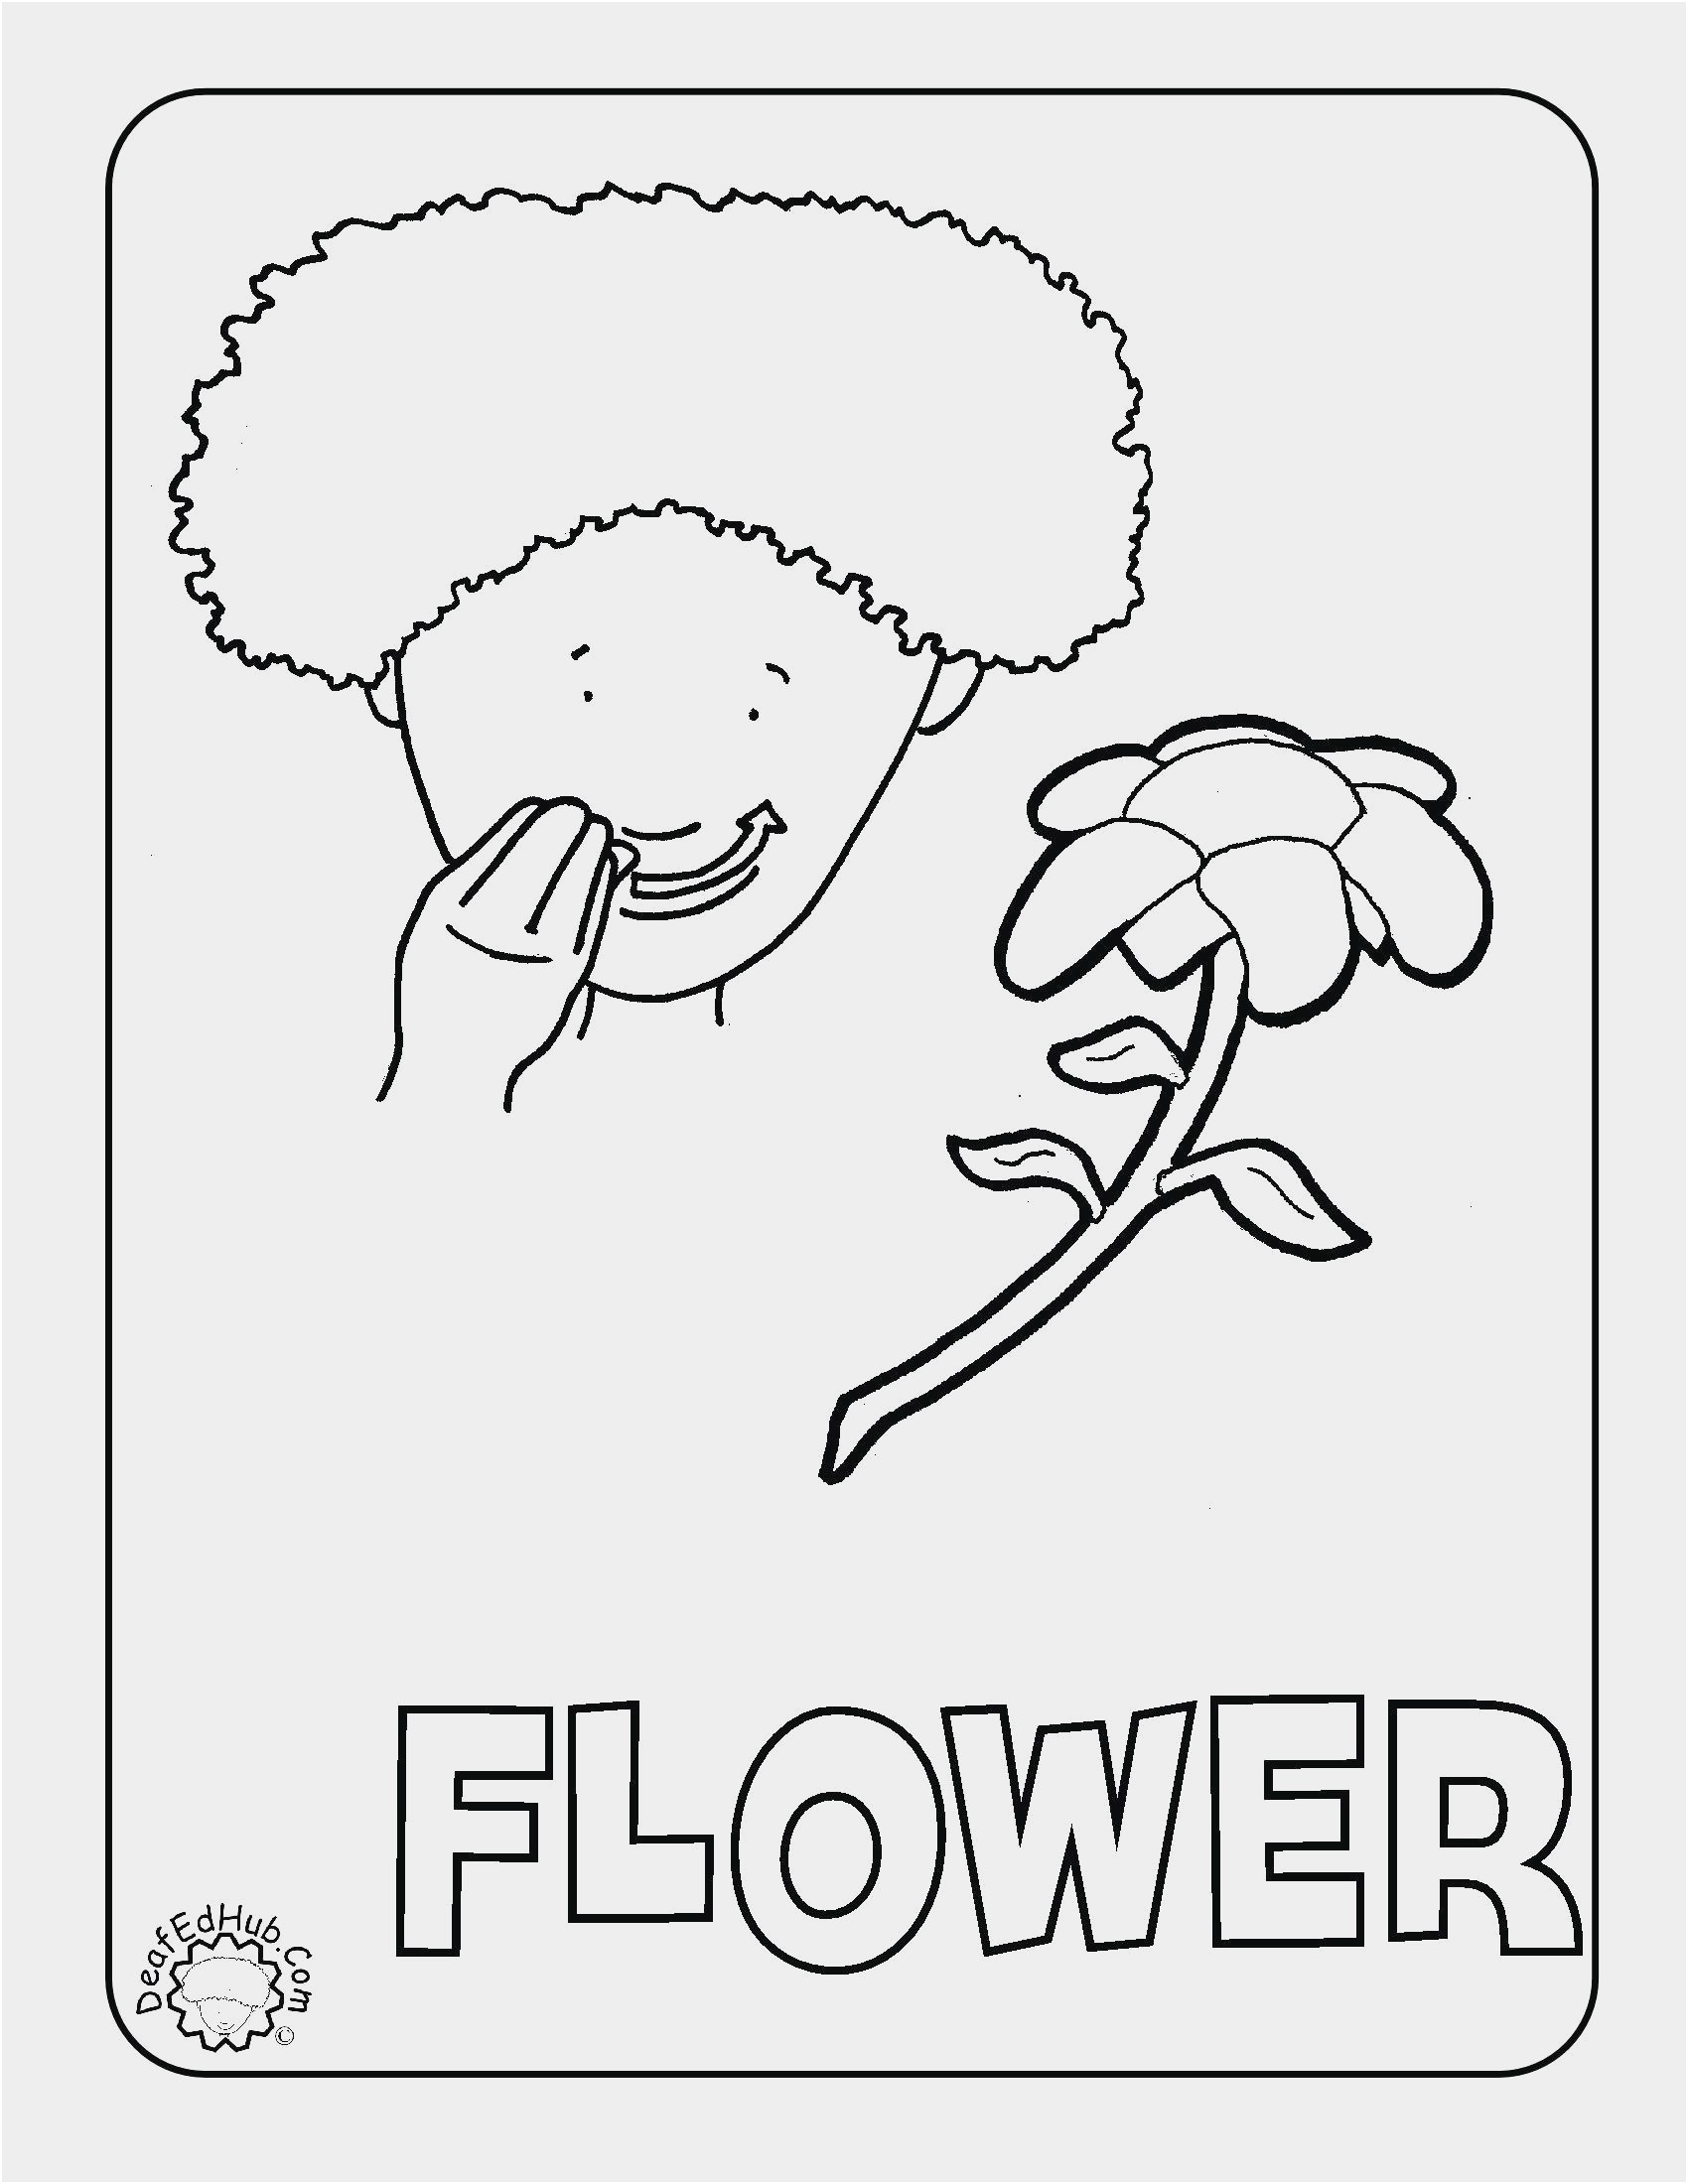 Sign Language Coloring Pages At Getcolorings